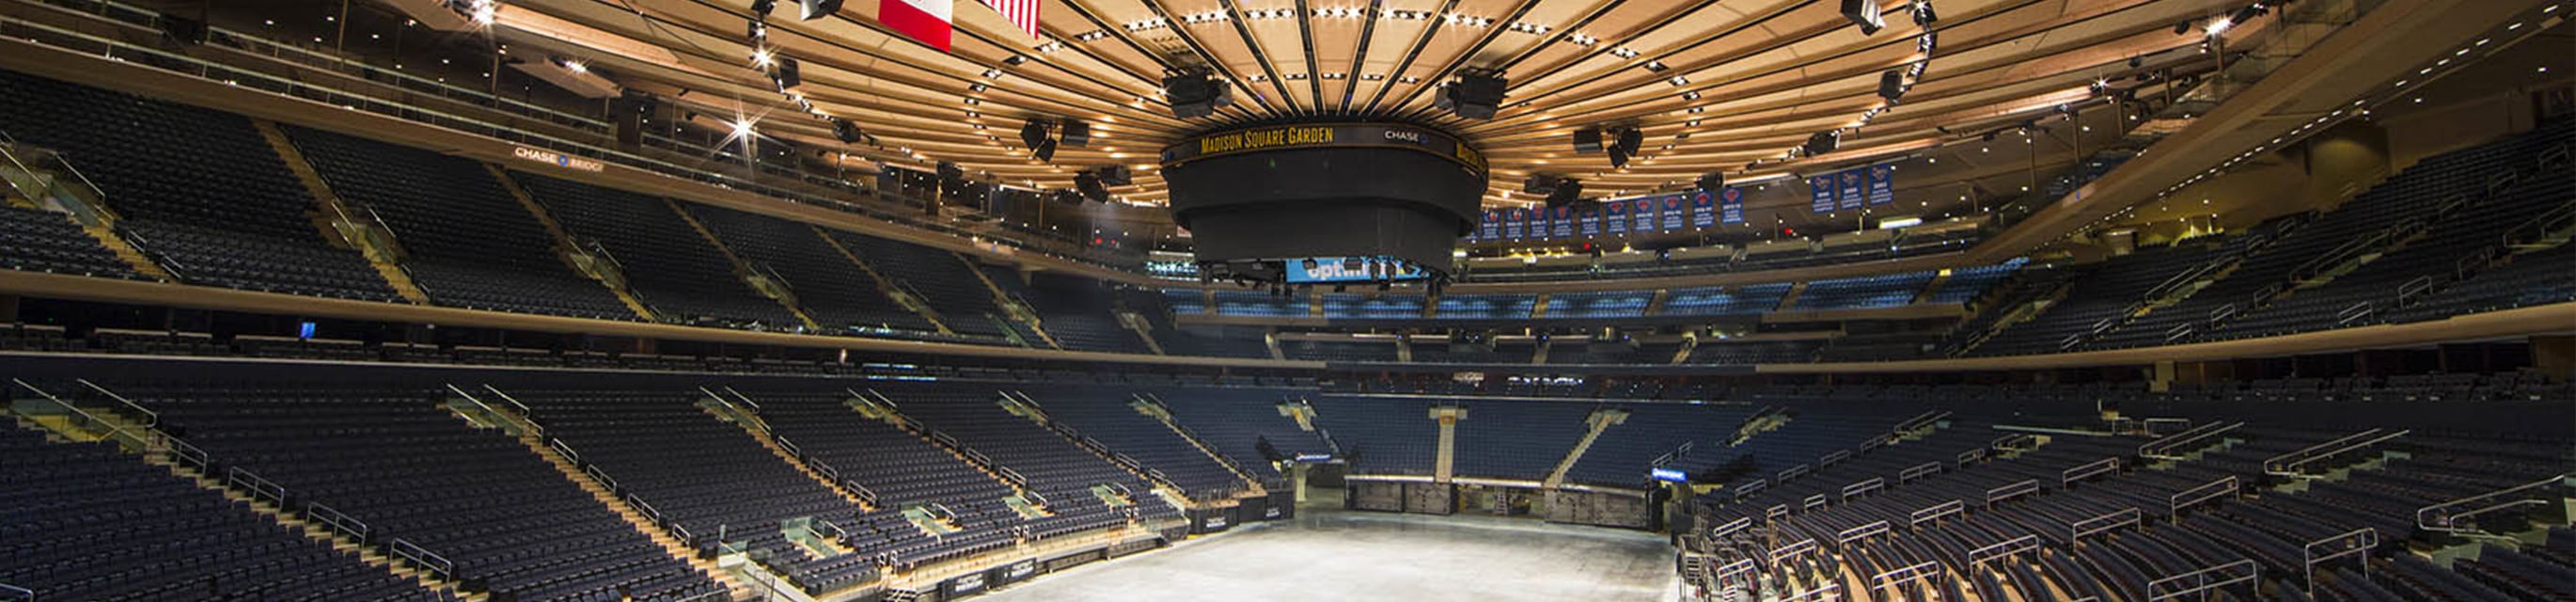 Madison Square Garden, MSG, the garden